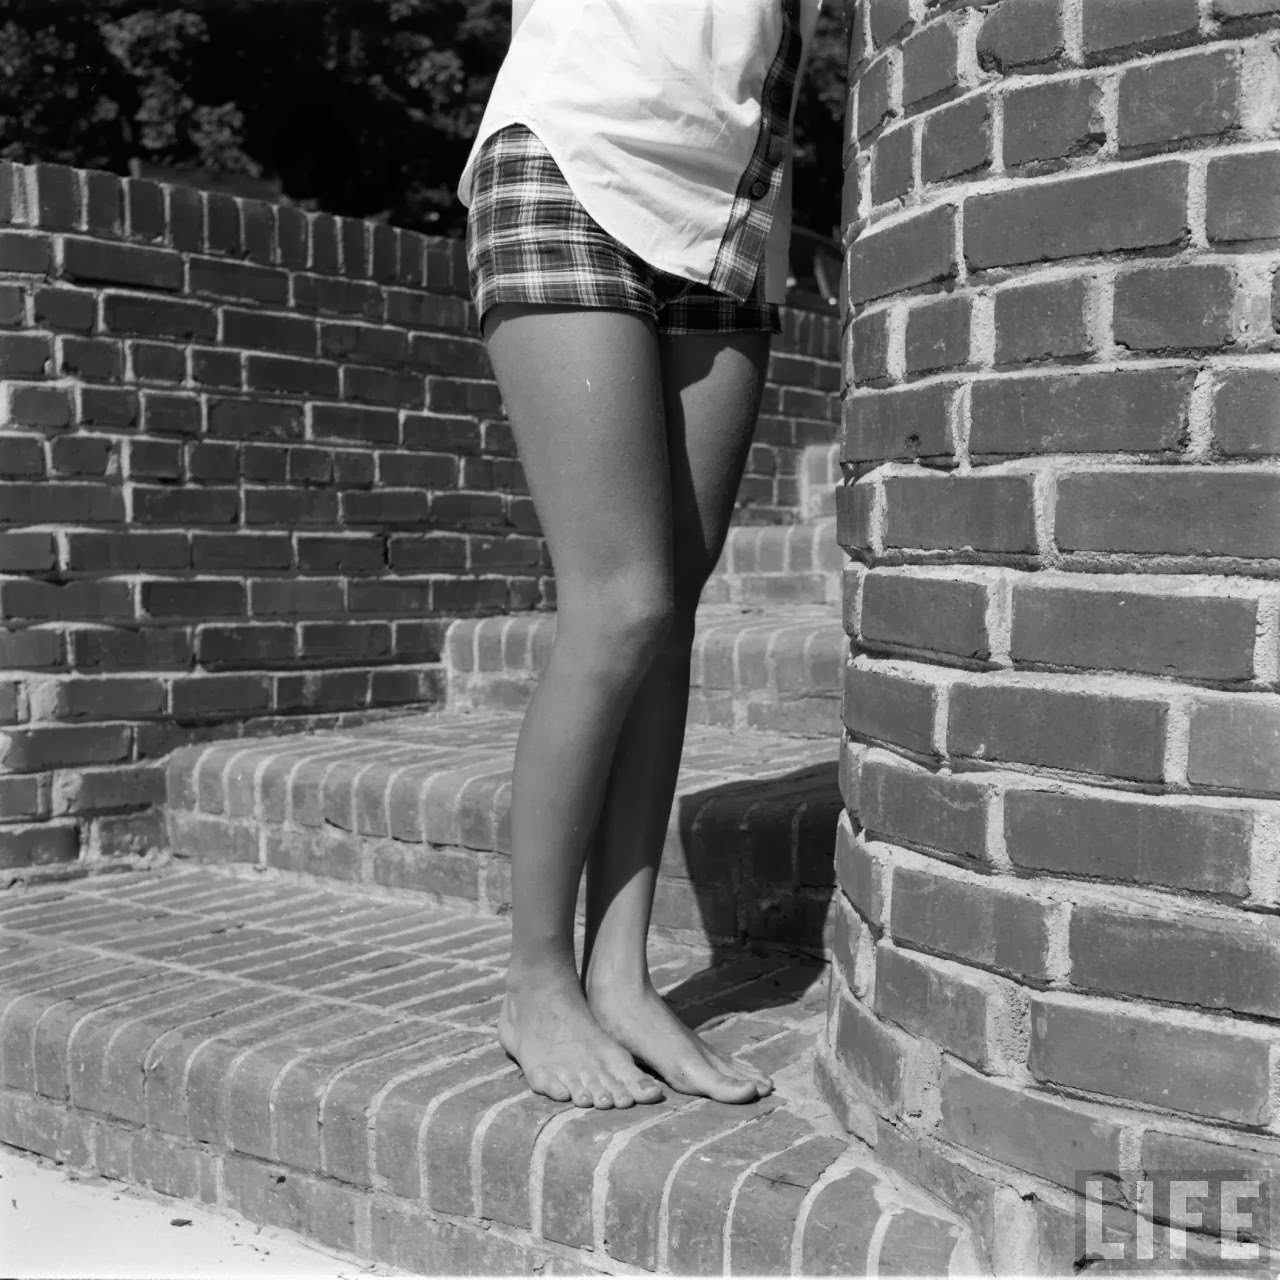 Short Shorts in the 1950s ~ vintage everyday